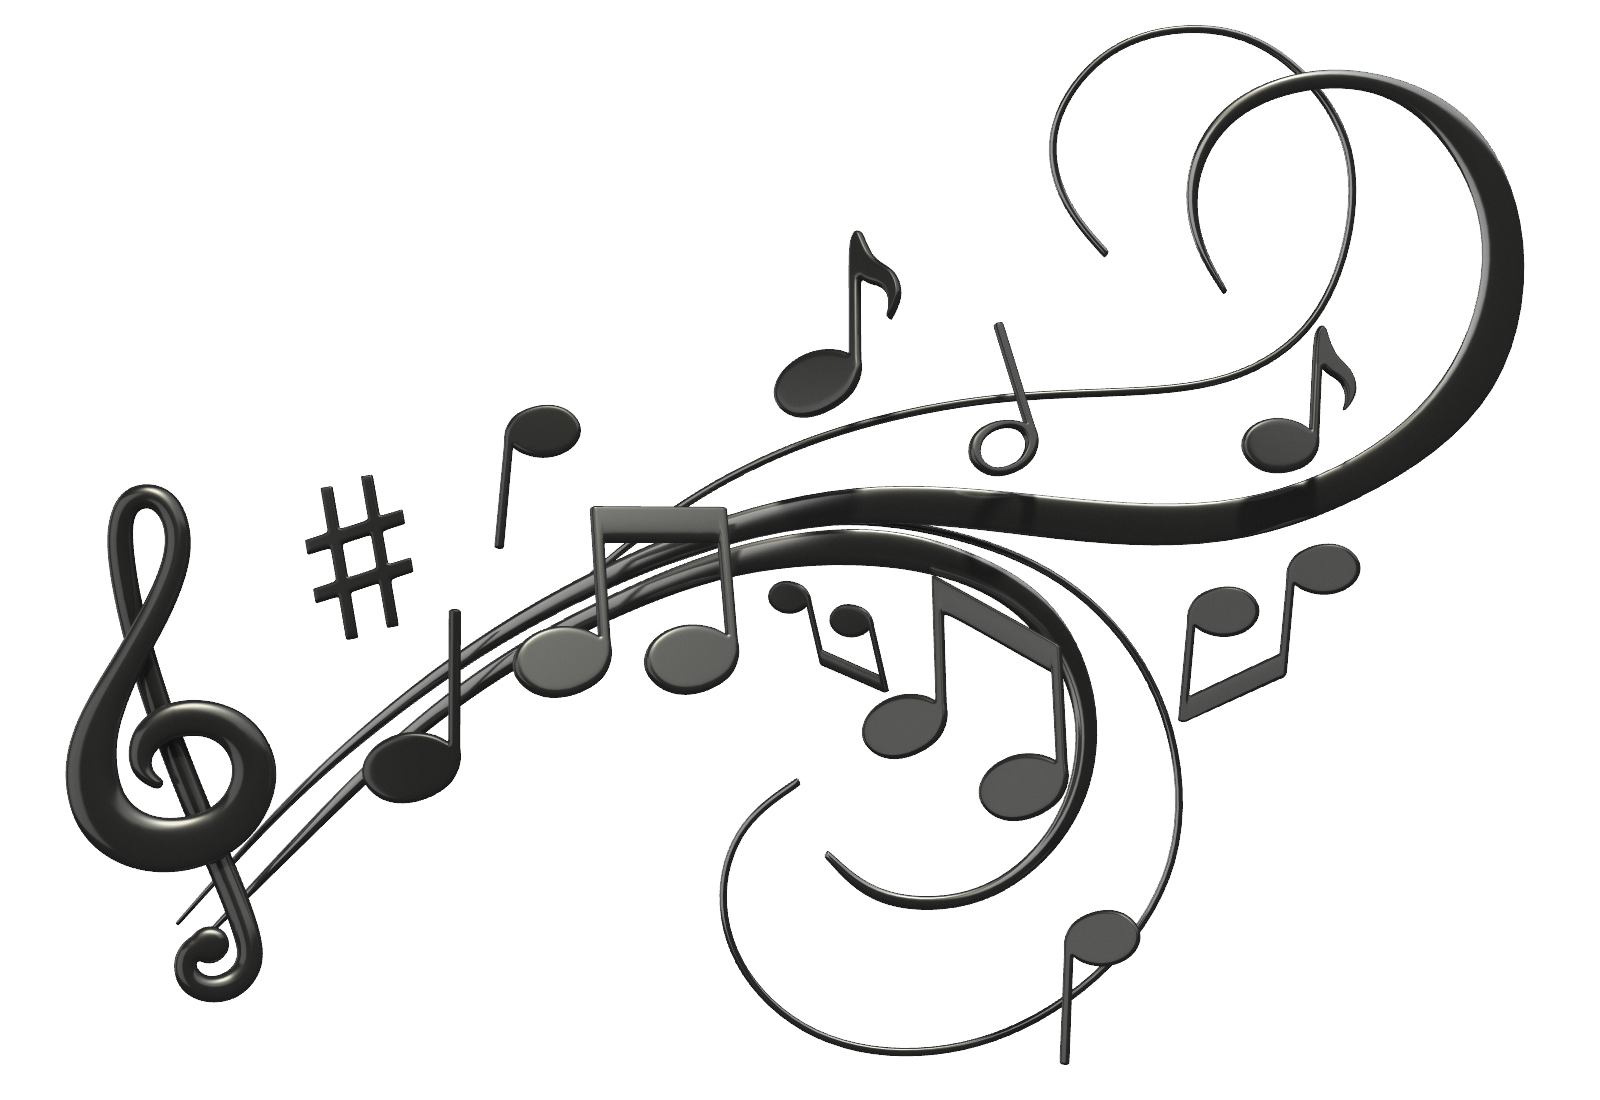 Notes icon web icons. Italy clipart music